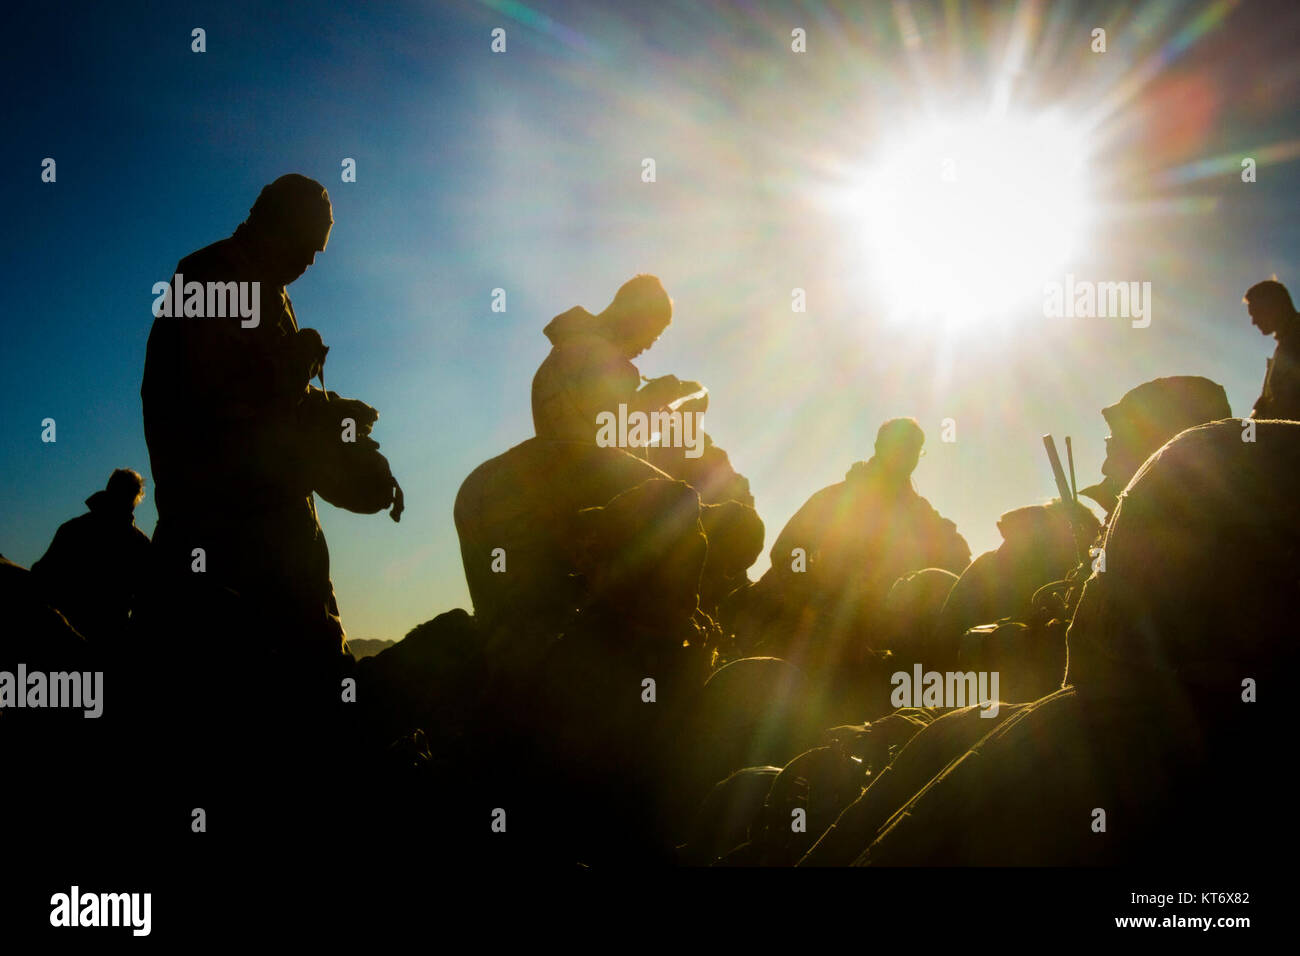 U.S. Marines with 2nd Battalion, 5th Marine Regiment, 1st Marine Division, prepare to depart a landing strip during - Stock Image